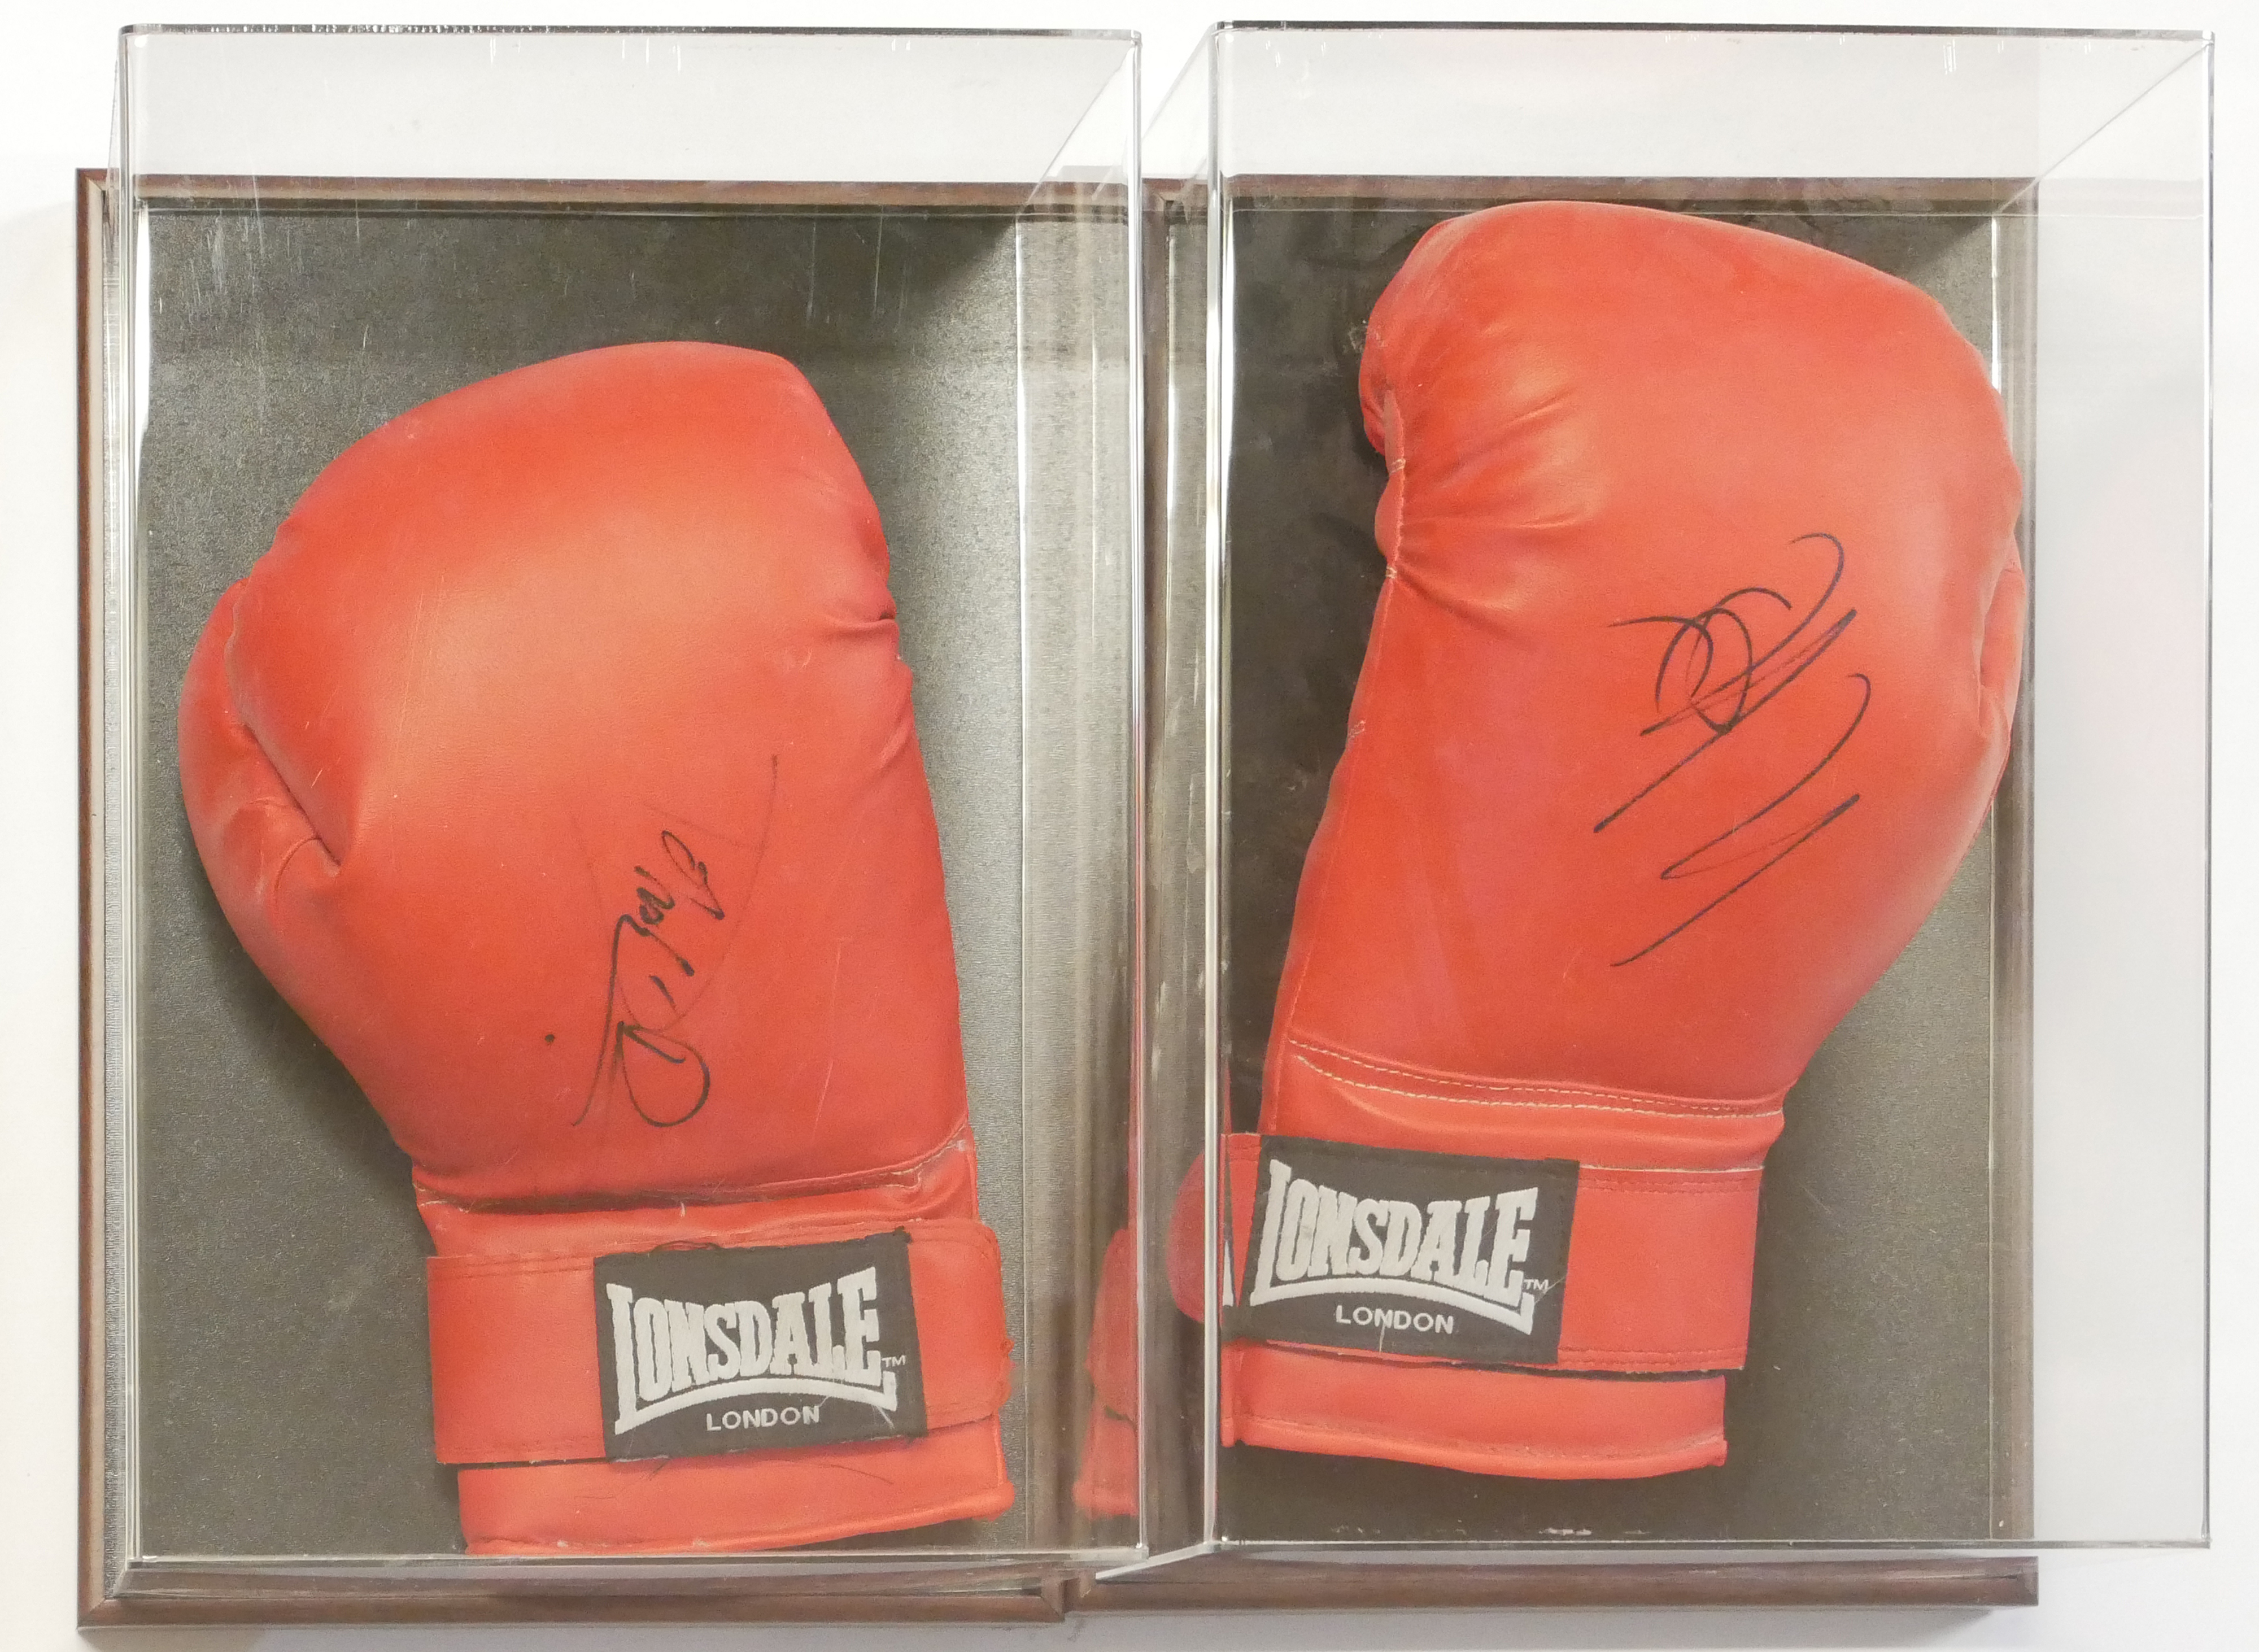 Lot 217 - A PAIR OF CASED AUTOGRAPHED LONSDALE BOXING GLOVES Hand signed by Sylvester Stallone and Dolph